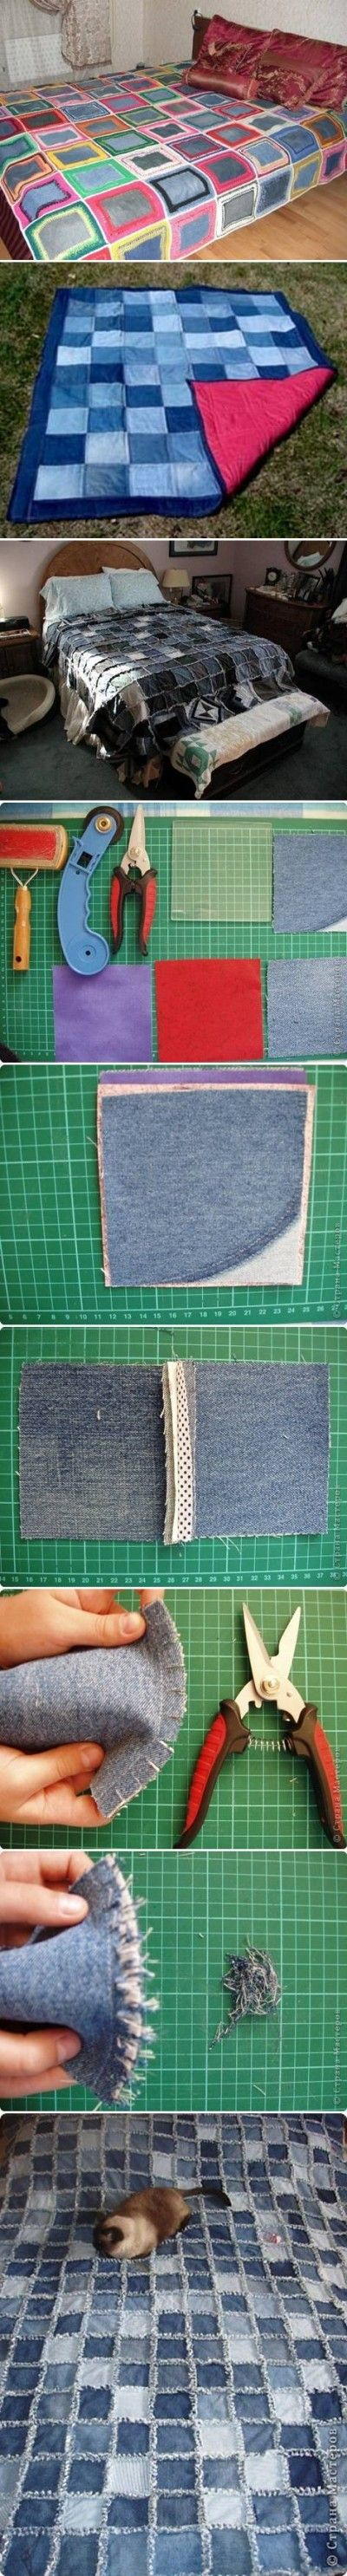 How to make Sew Denim Bedspread step by step DIY tutorial instructions 400x2972 How to make Sew Denim Bedspread step by step DIY tutorial in...